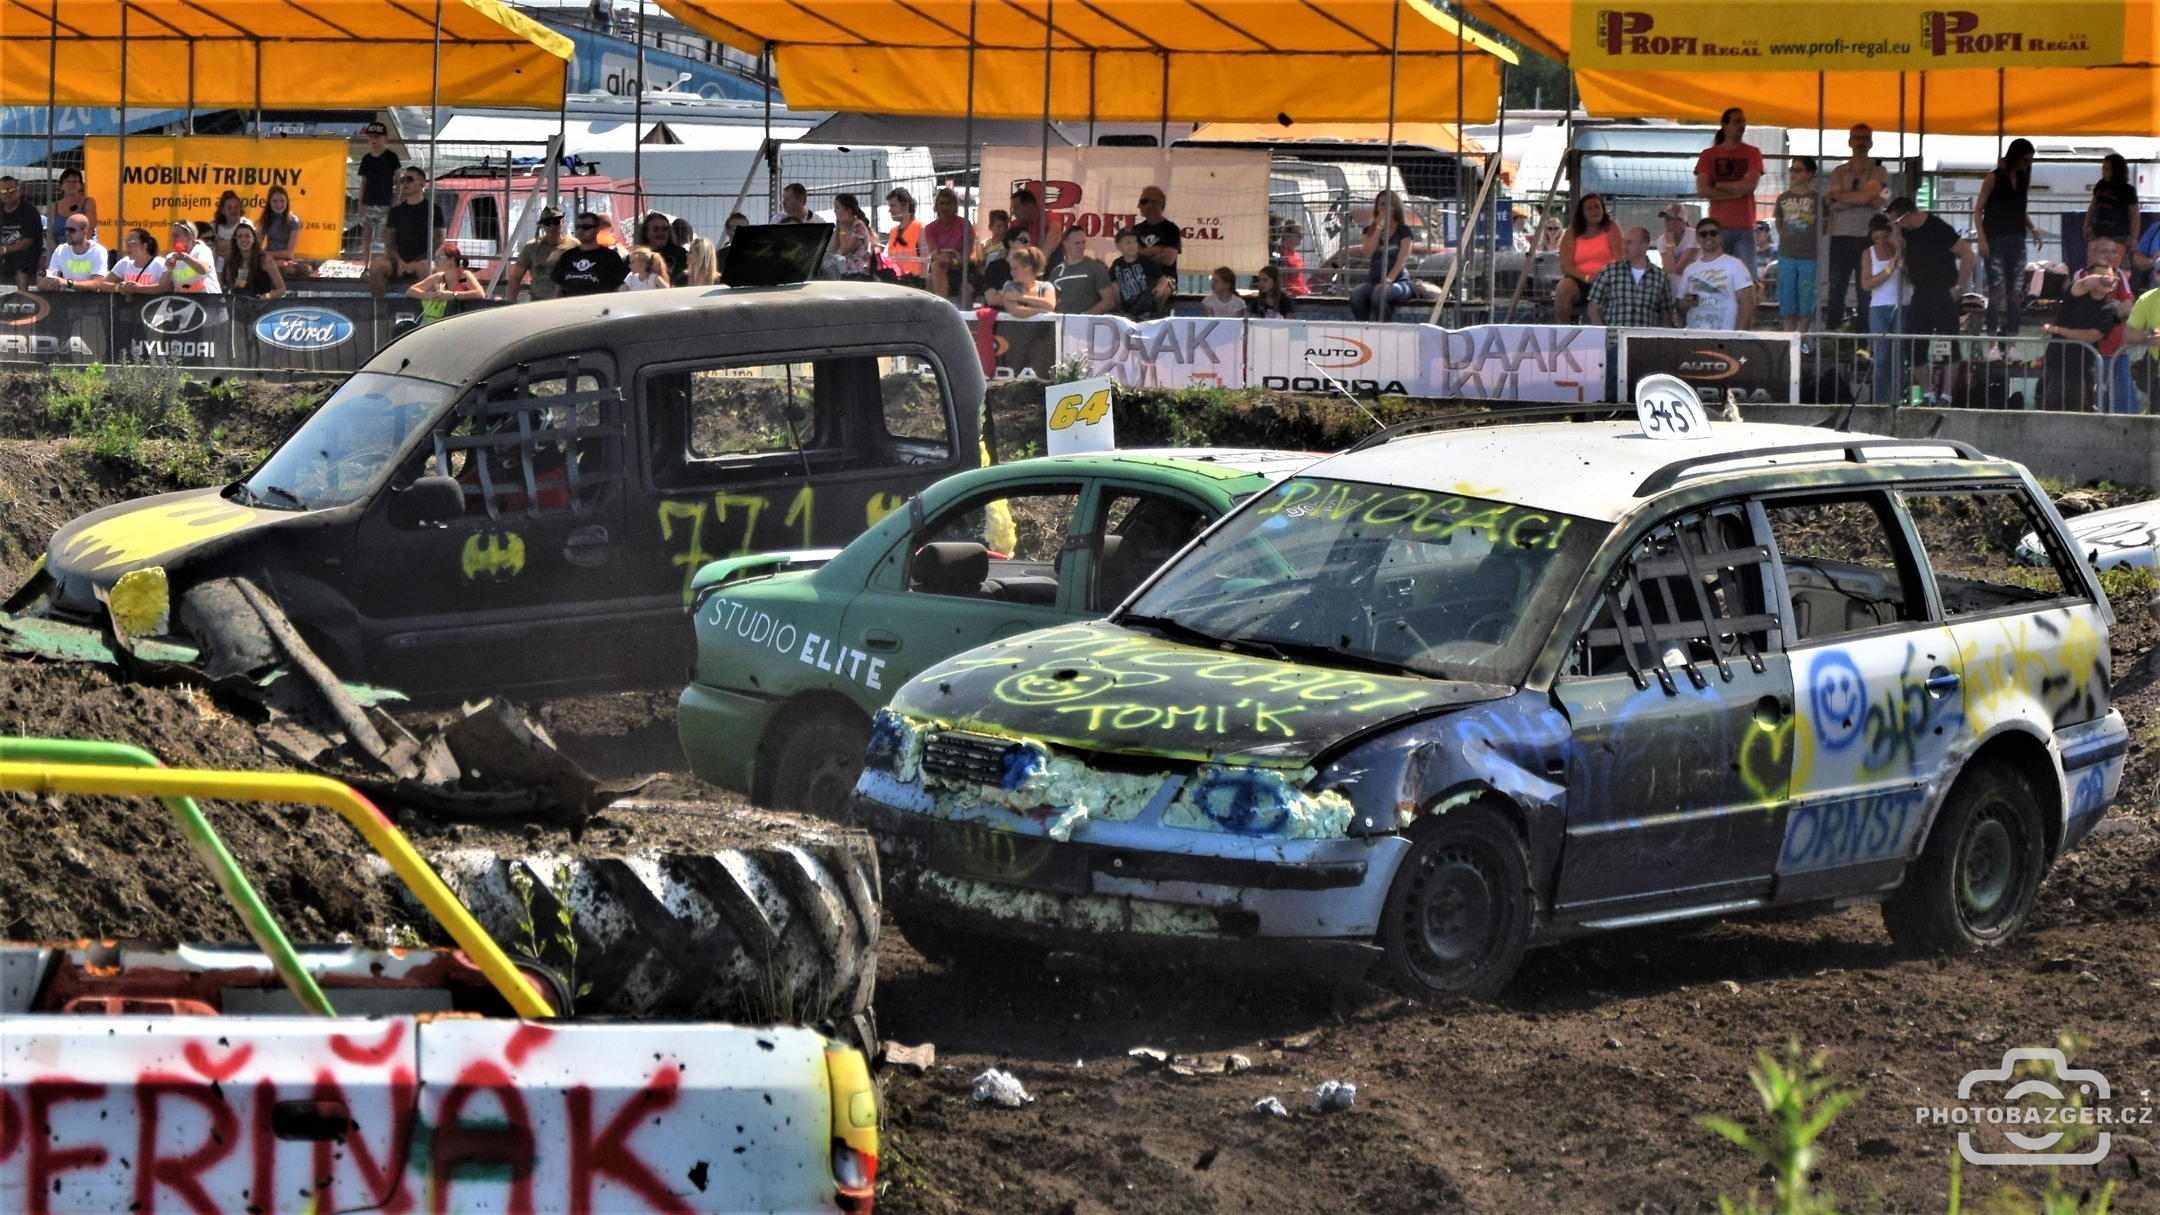 DestructionDerby (24)